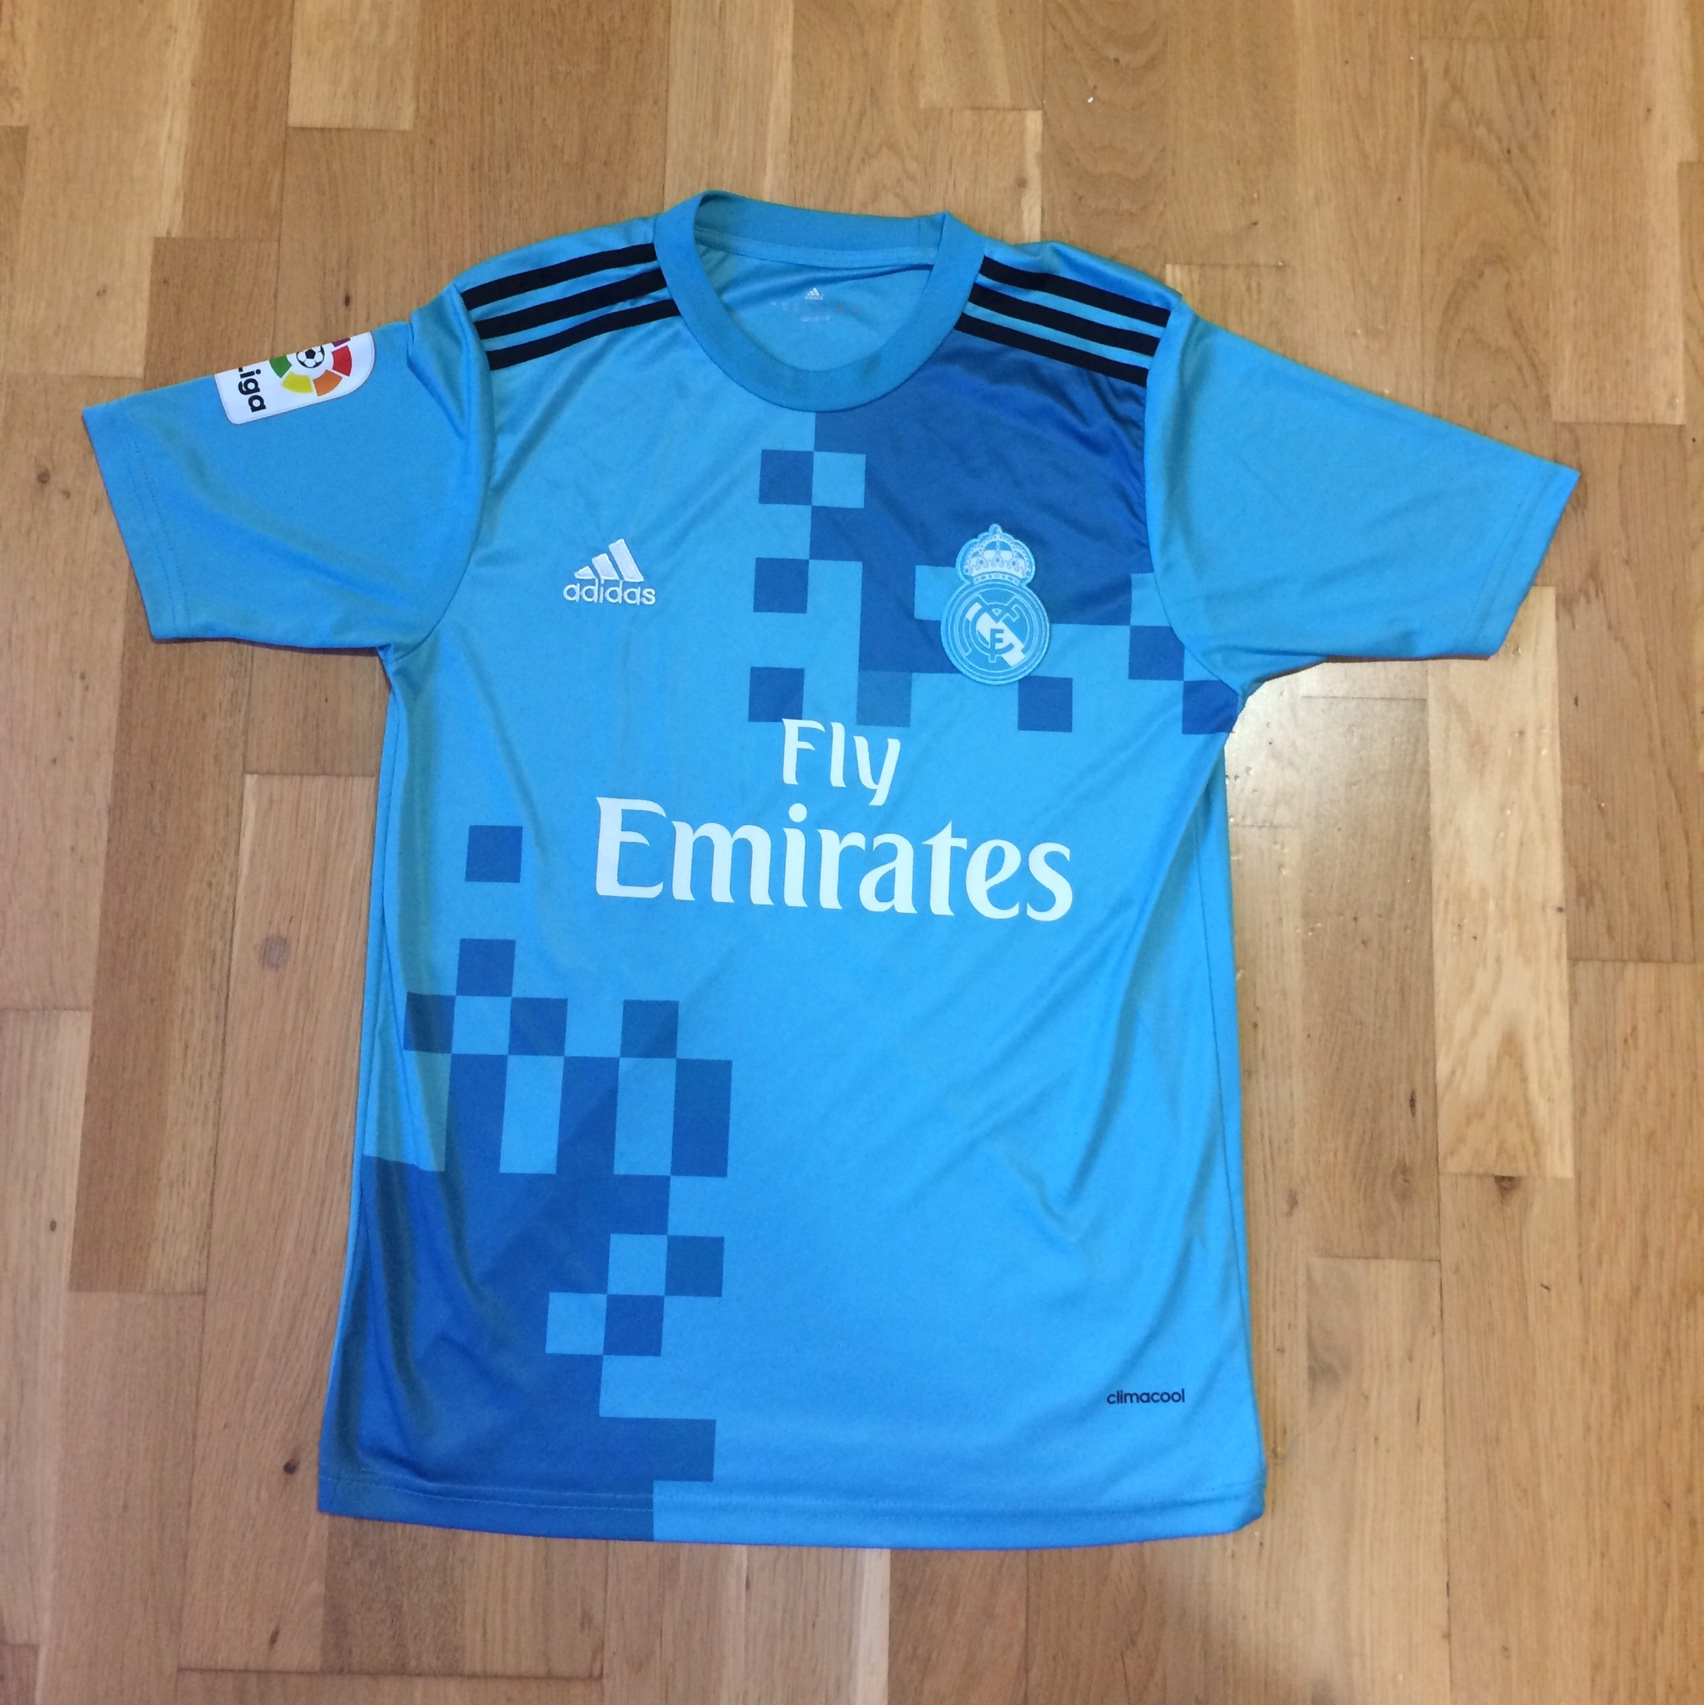 factory authentic a4362 9bc9d Light blue Real Madrid football jersey.